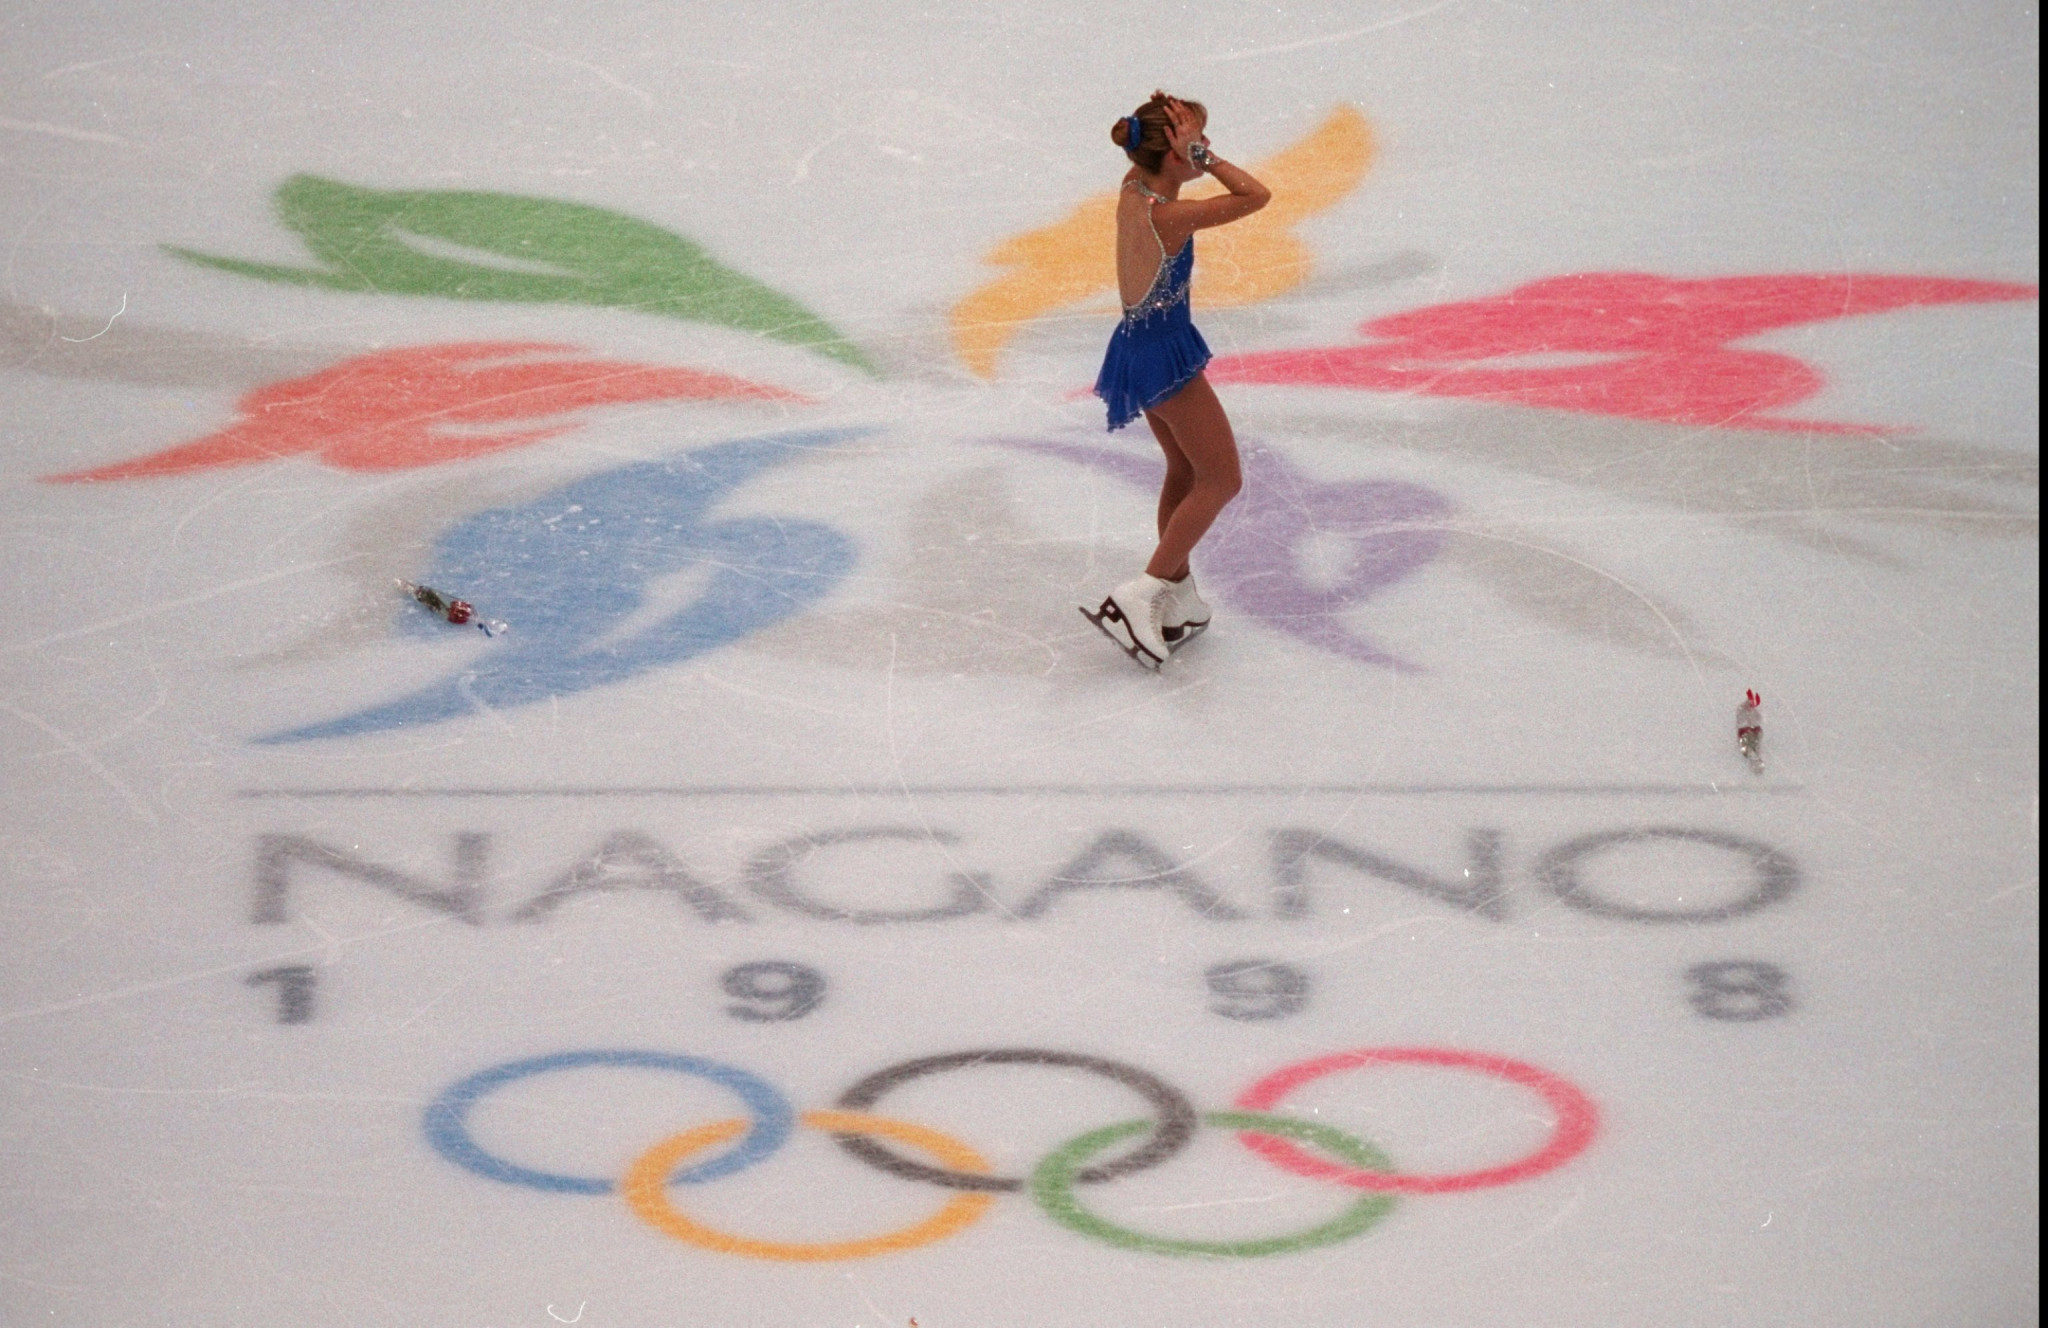 Richard Callaghan coached US athlete Tara Lipinski to Winter Olympics gold in Nagano in 1998 ©Getty Images